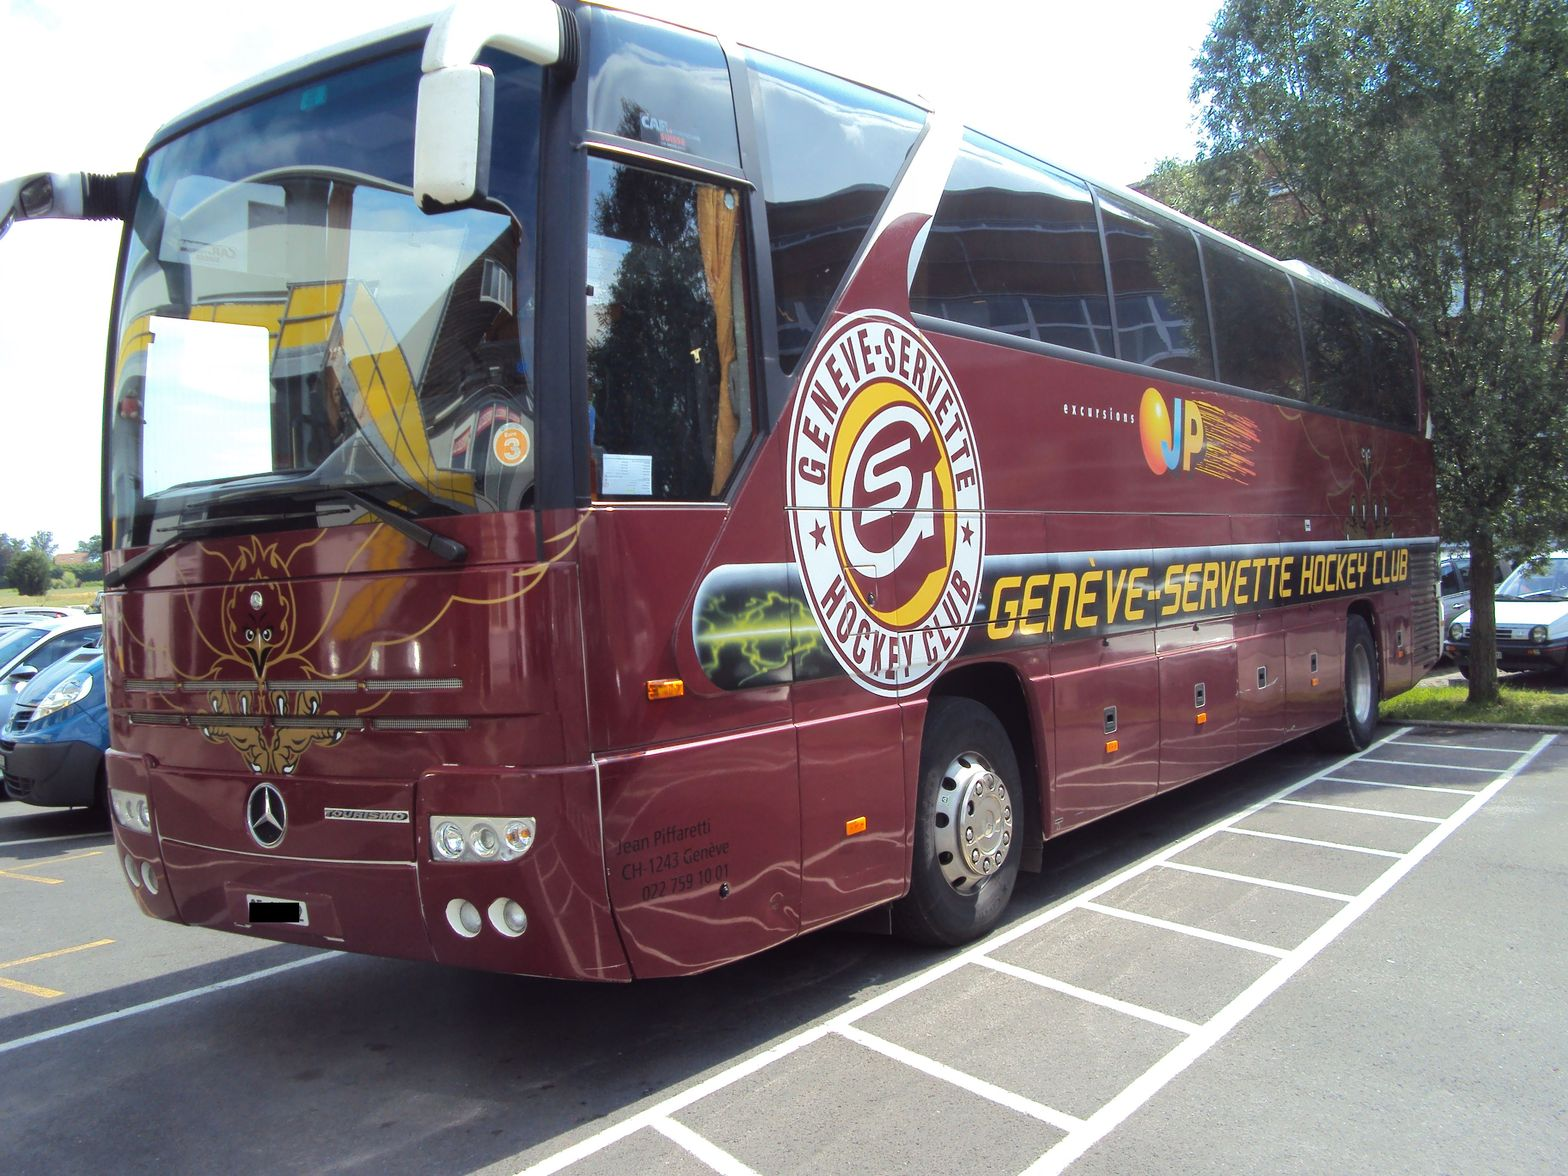 Mercedes Bus Du Geneve Servette Hockey Club Autobus Car